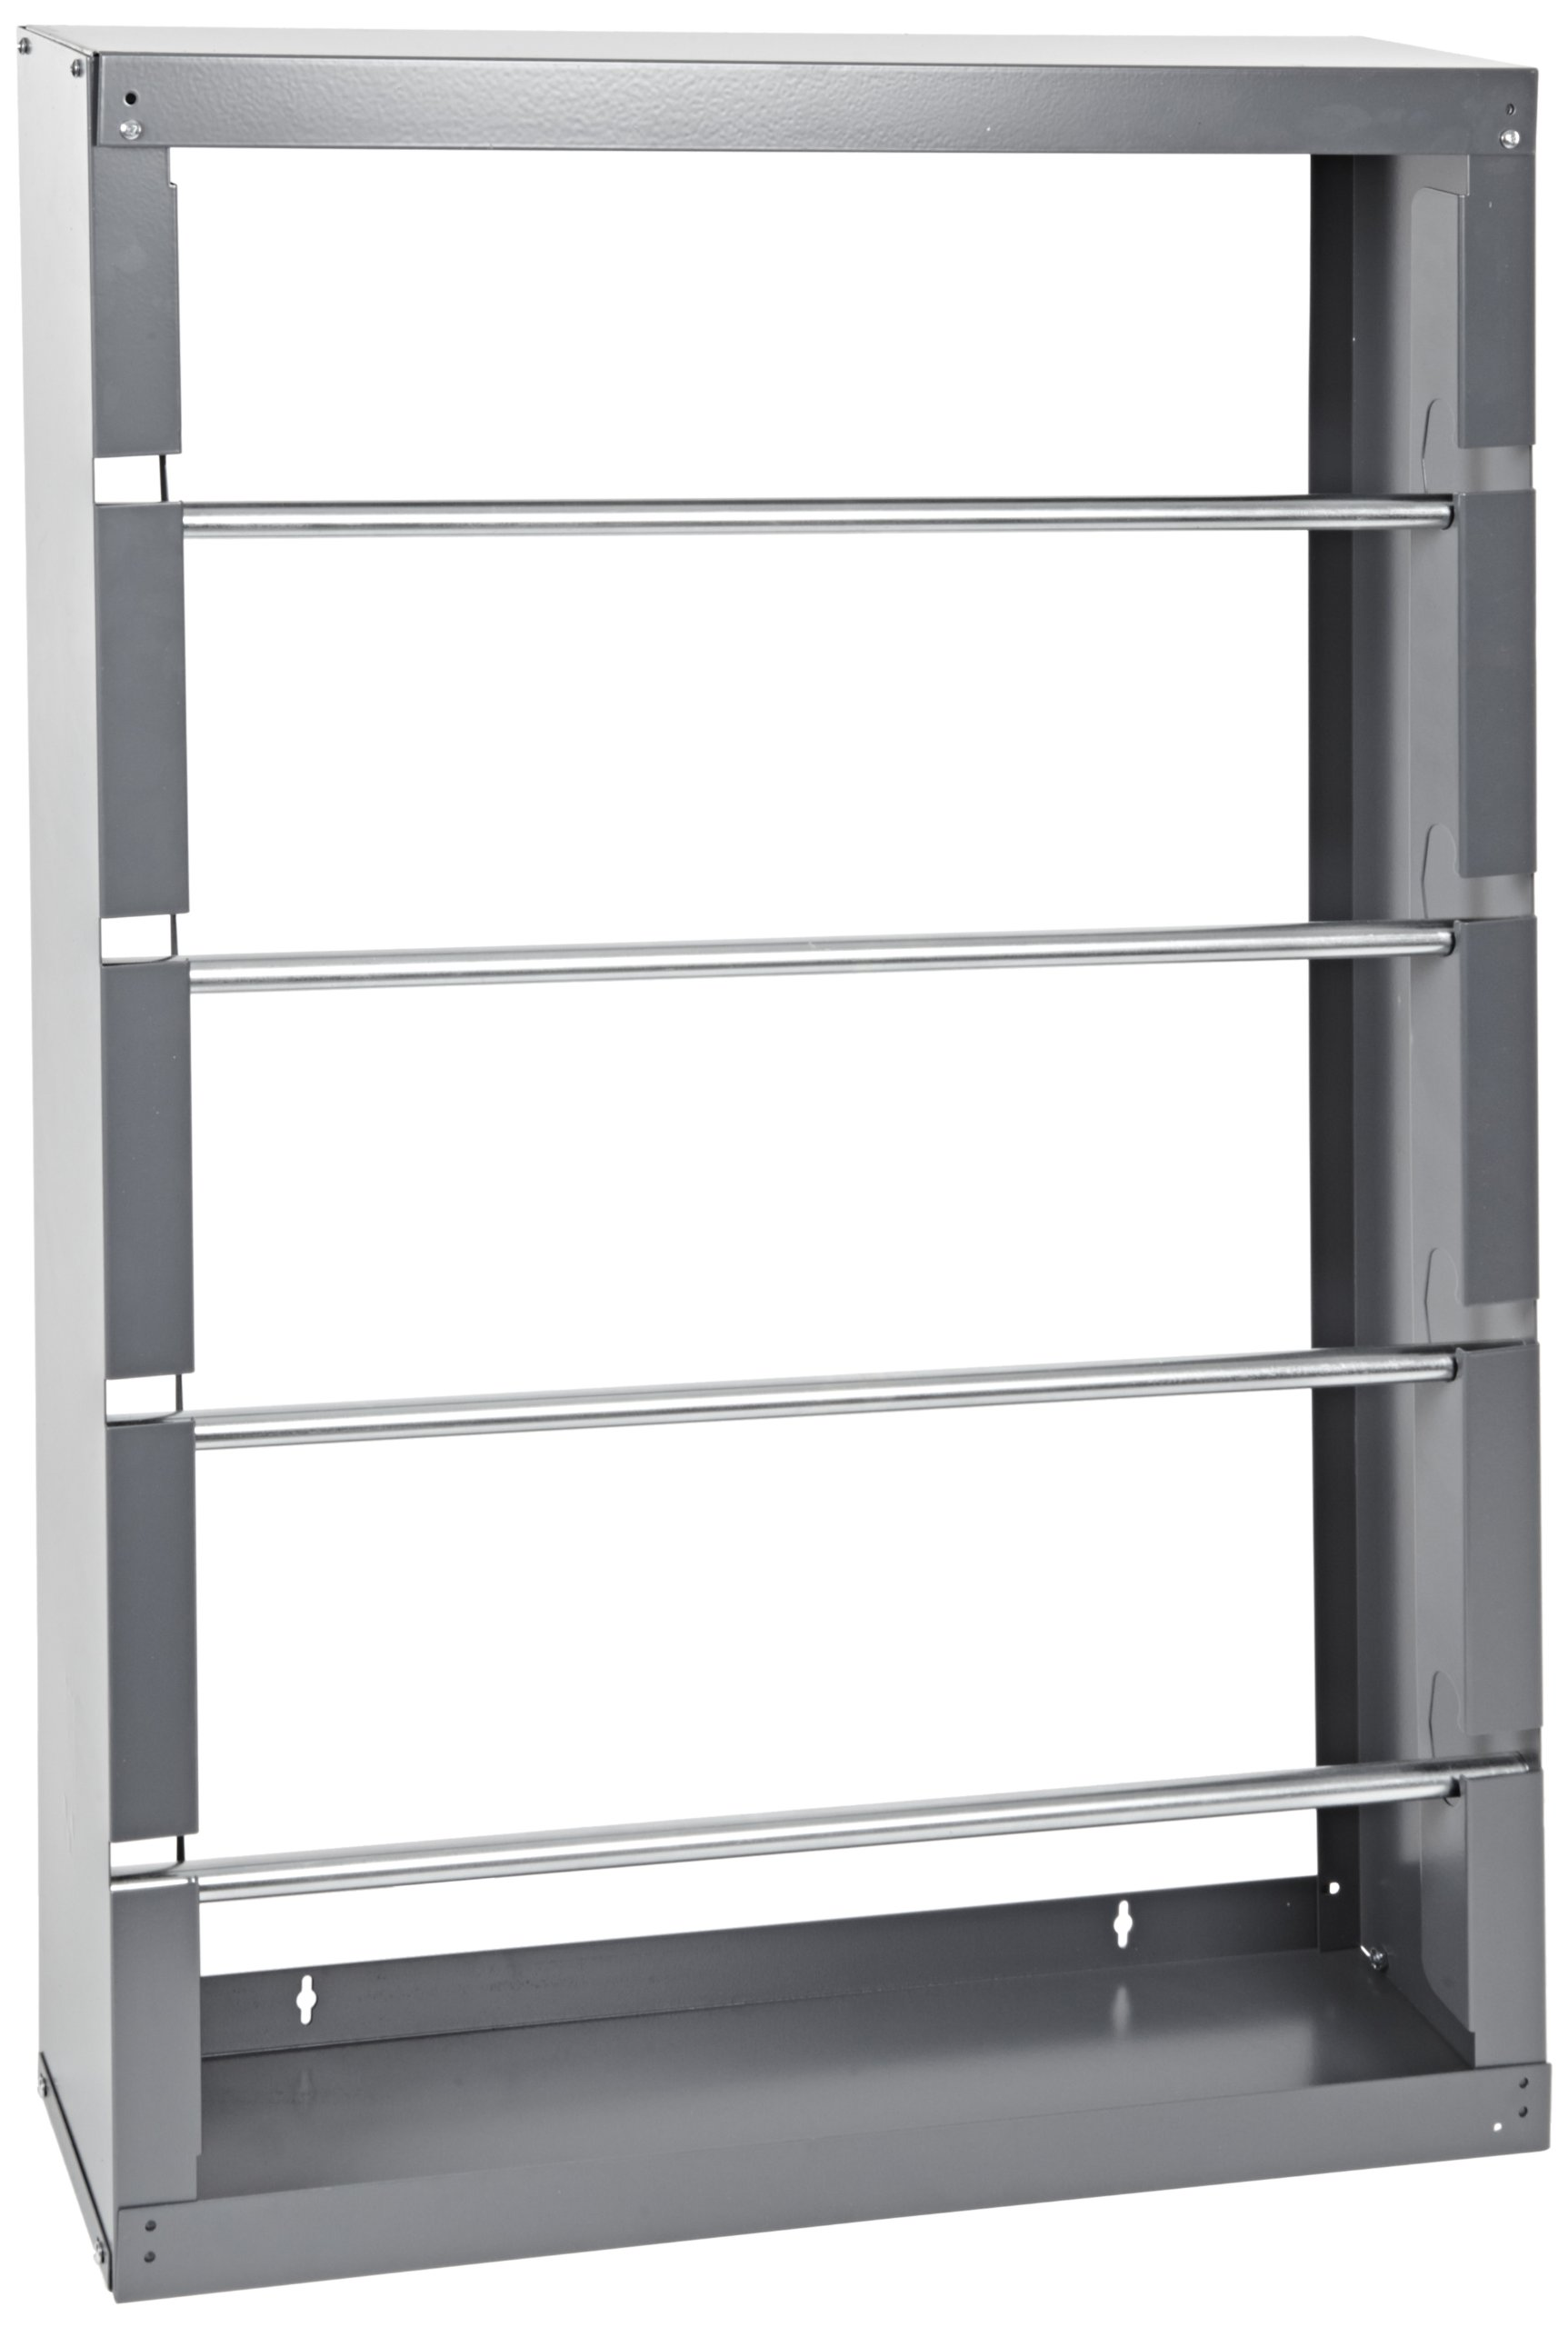 Durham 368-95 Gray Cold-Rolled Steel Wire Spool Rack with 4 Rods, 26-1/8'' Width x 37-1/8'' Height x 6'' Depth by Durham